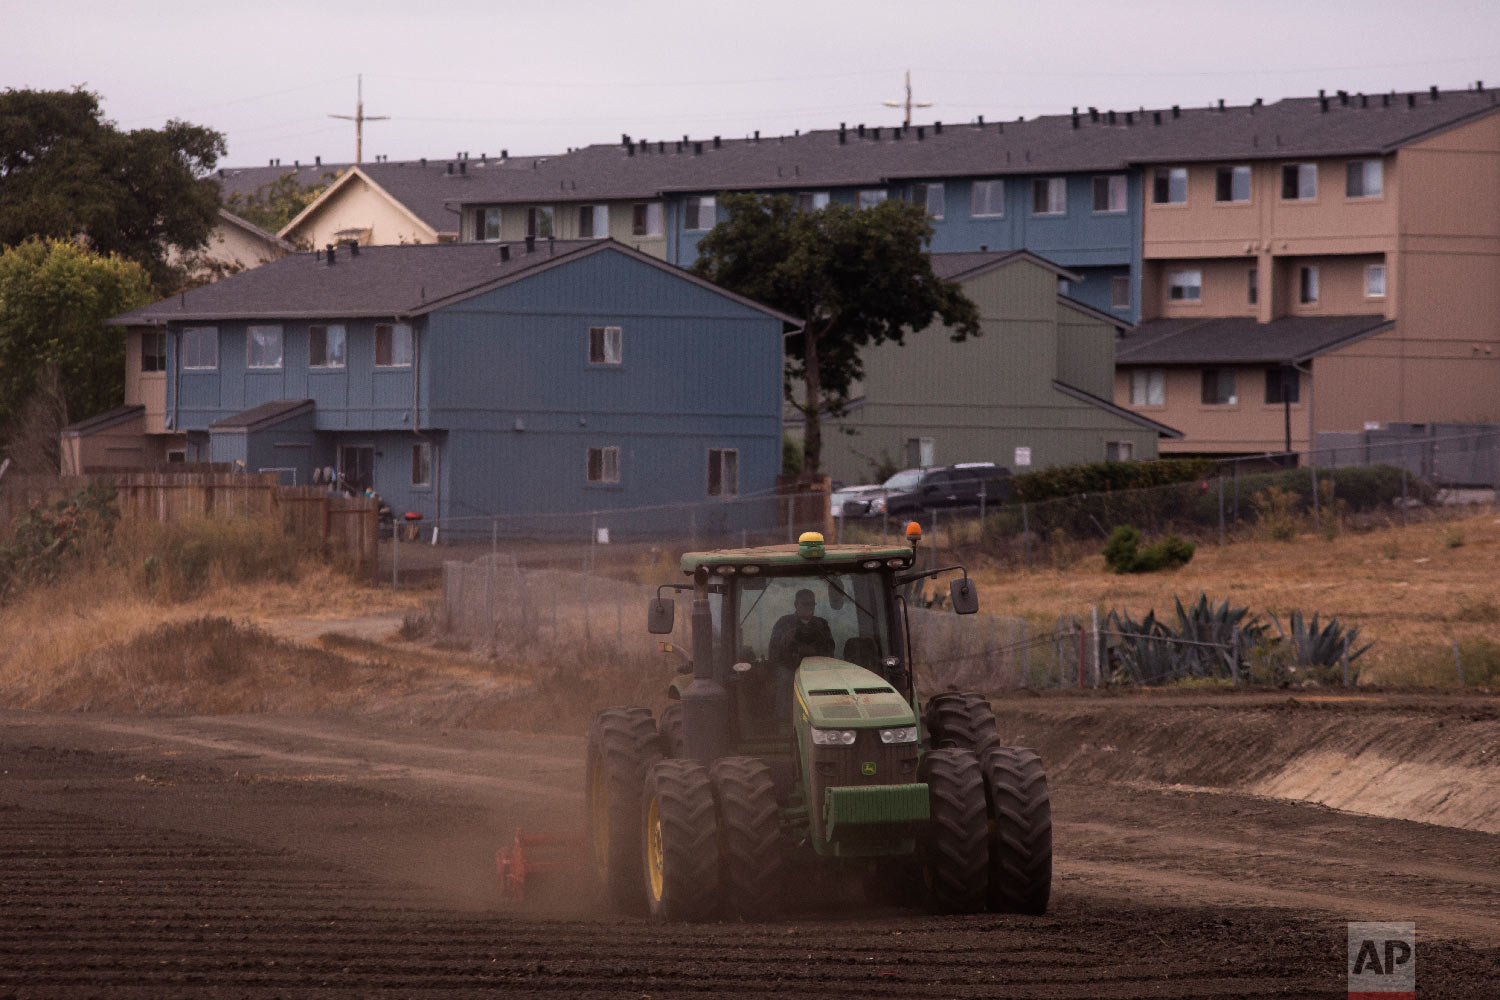 A tractor plows in a field near apartment buildings in Salinas, Calif., on Sept. 5, 2018. (AP Photo/Jae C. Hong)